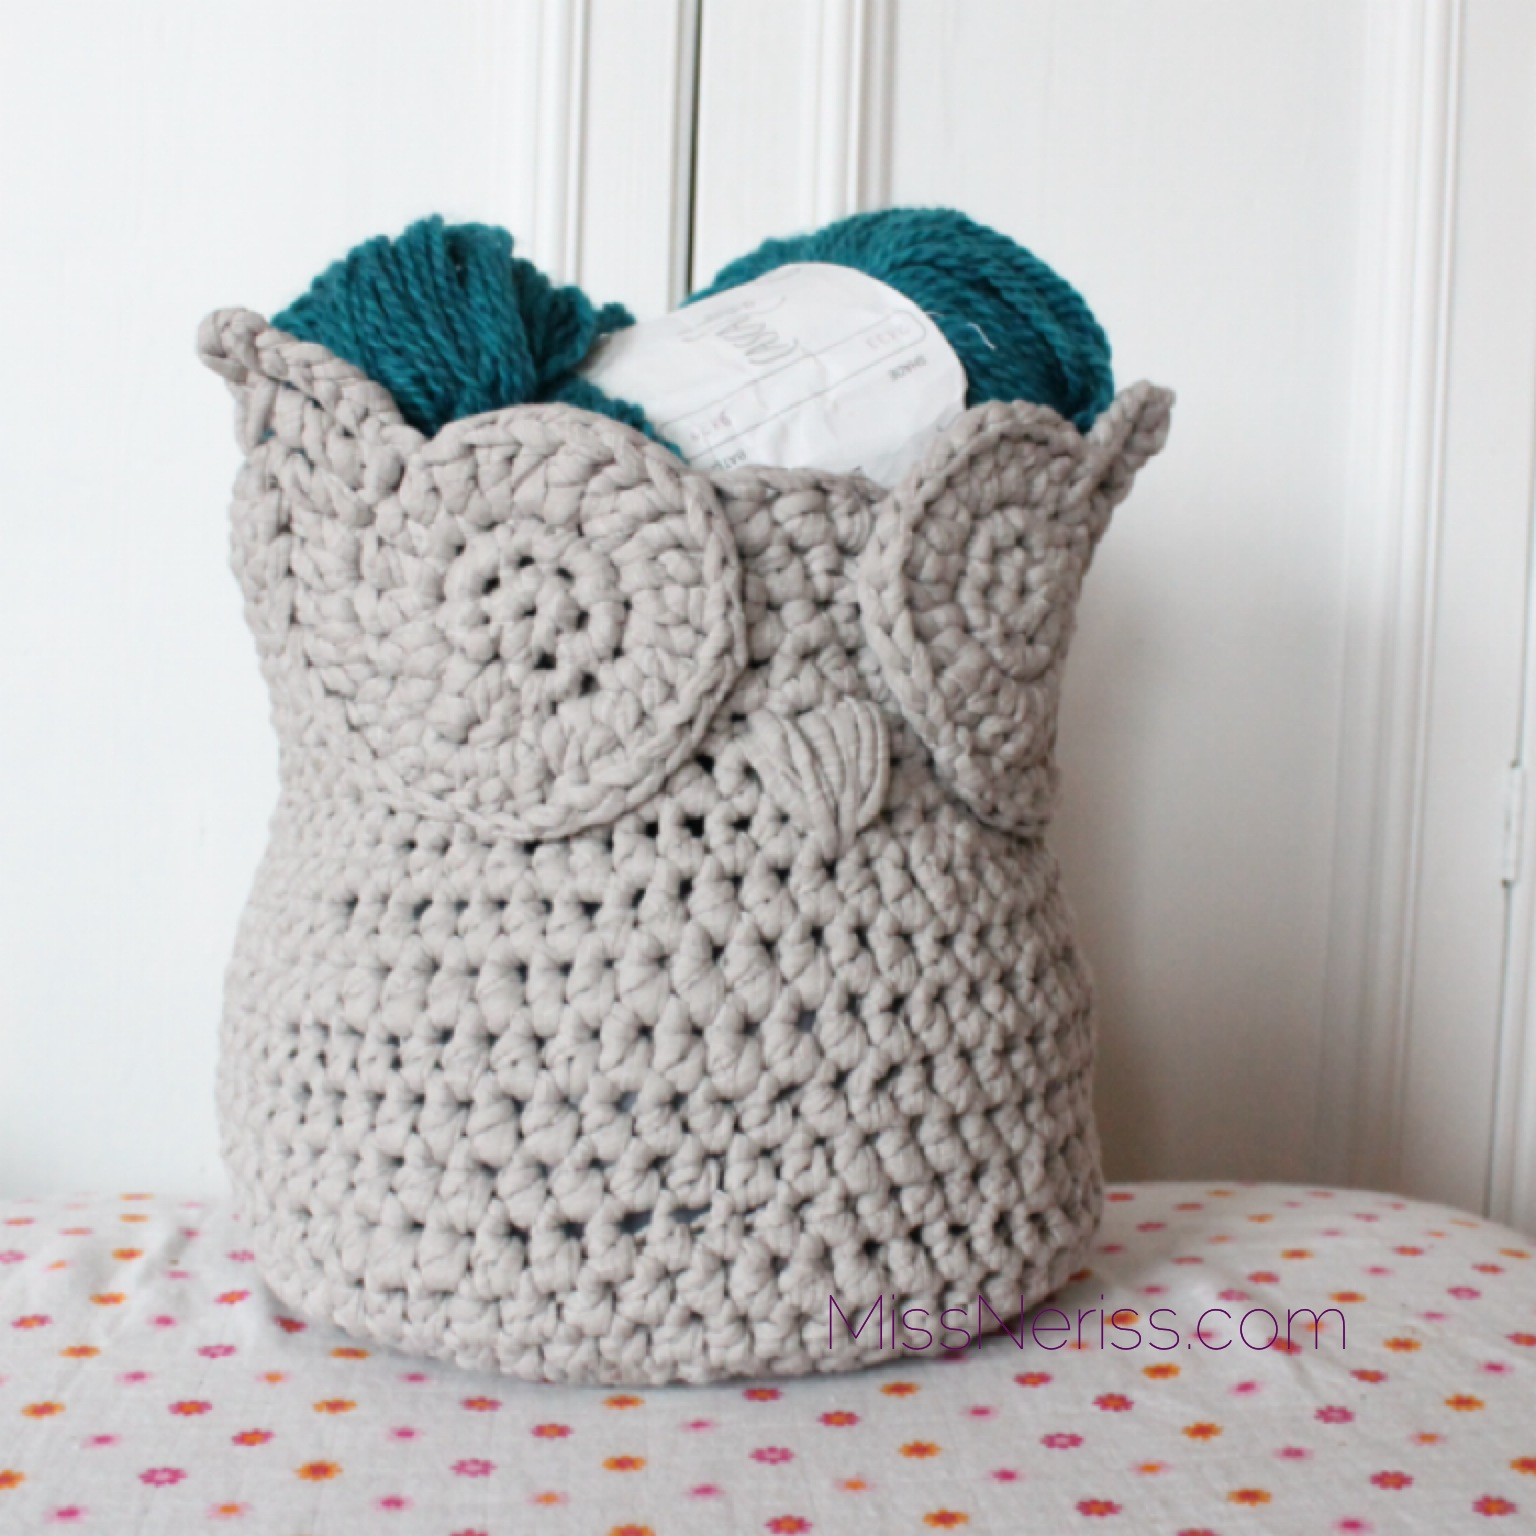 Free Crochet Patterns Owl Basket : Owl Zpagetti Yarn Basket MissNeriss